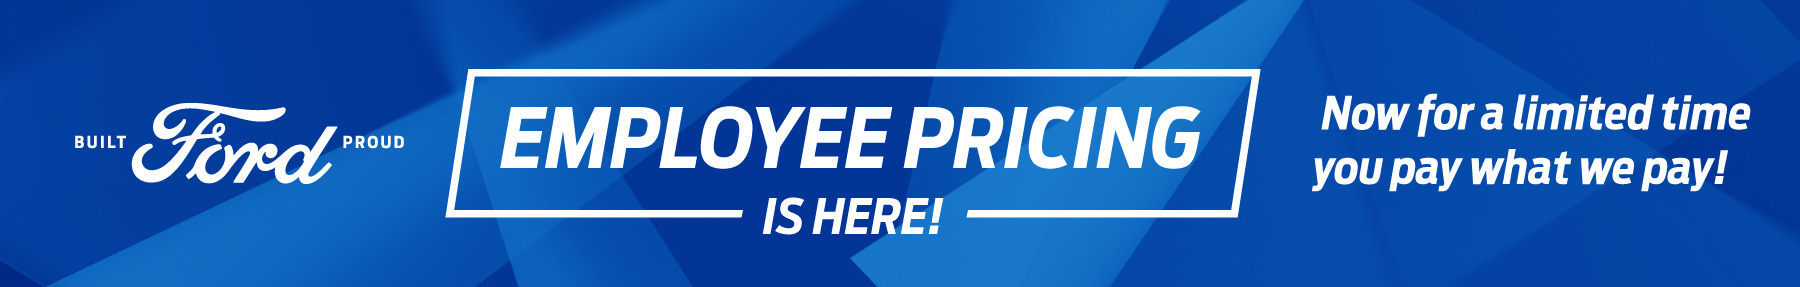 661507207 Team Ford Employee Pricing Banner Option1 7x1